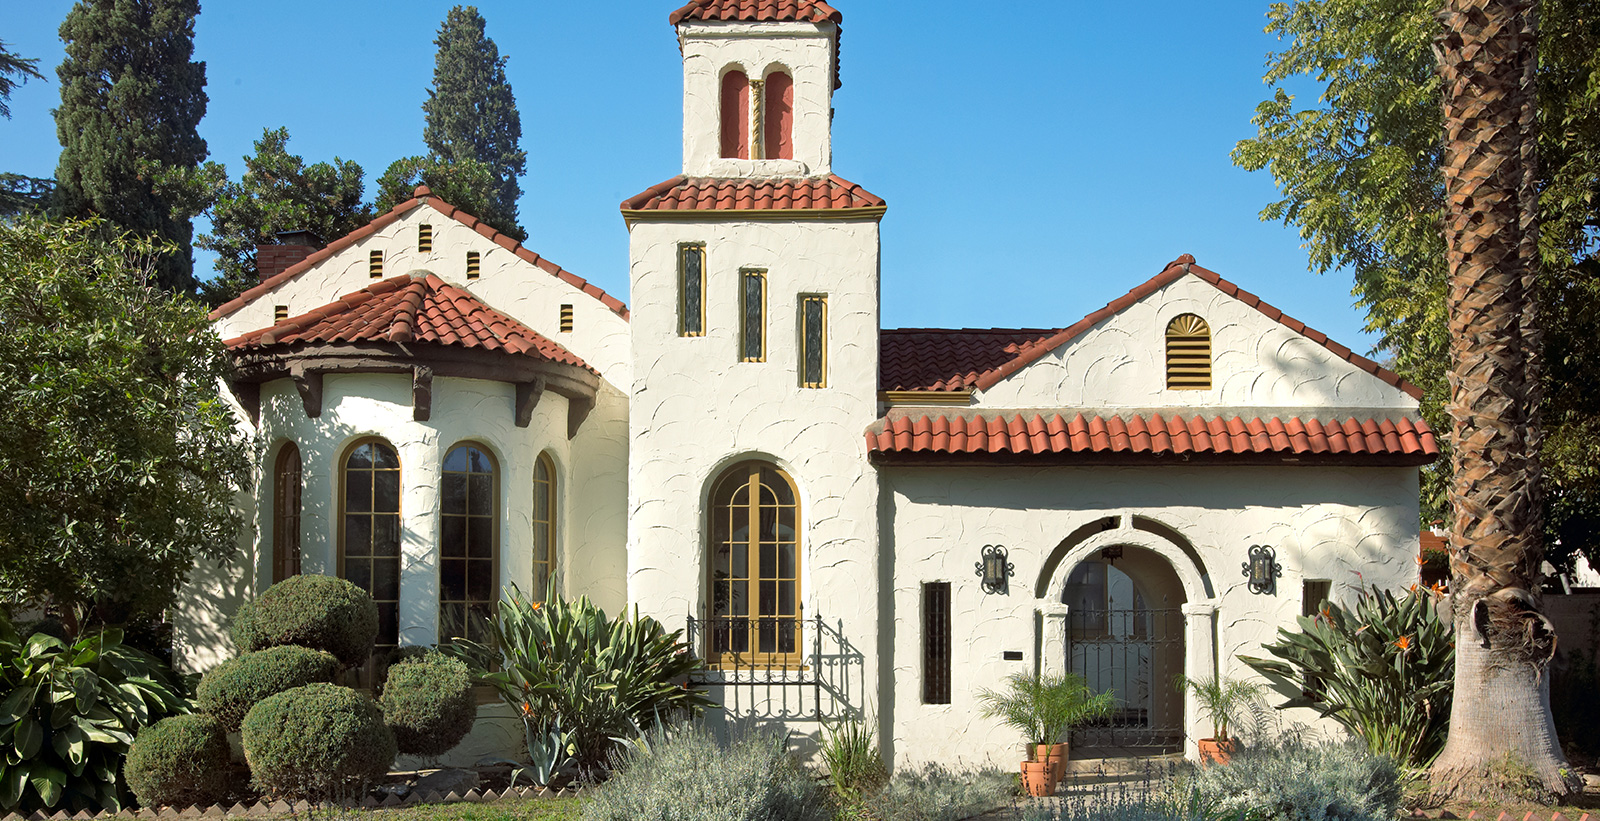 Spanish Mediterranean House Exterior Colors Ideas And Inspiration Paint Colors Behr